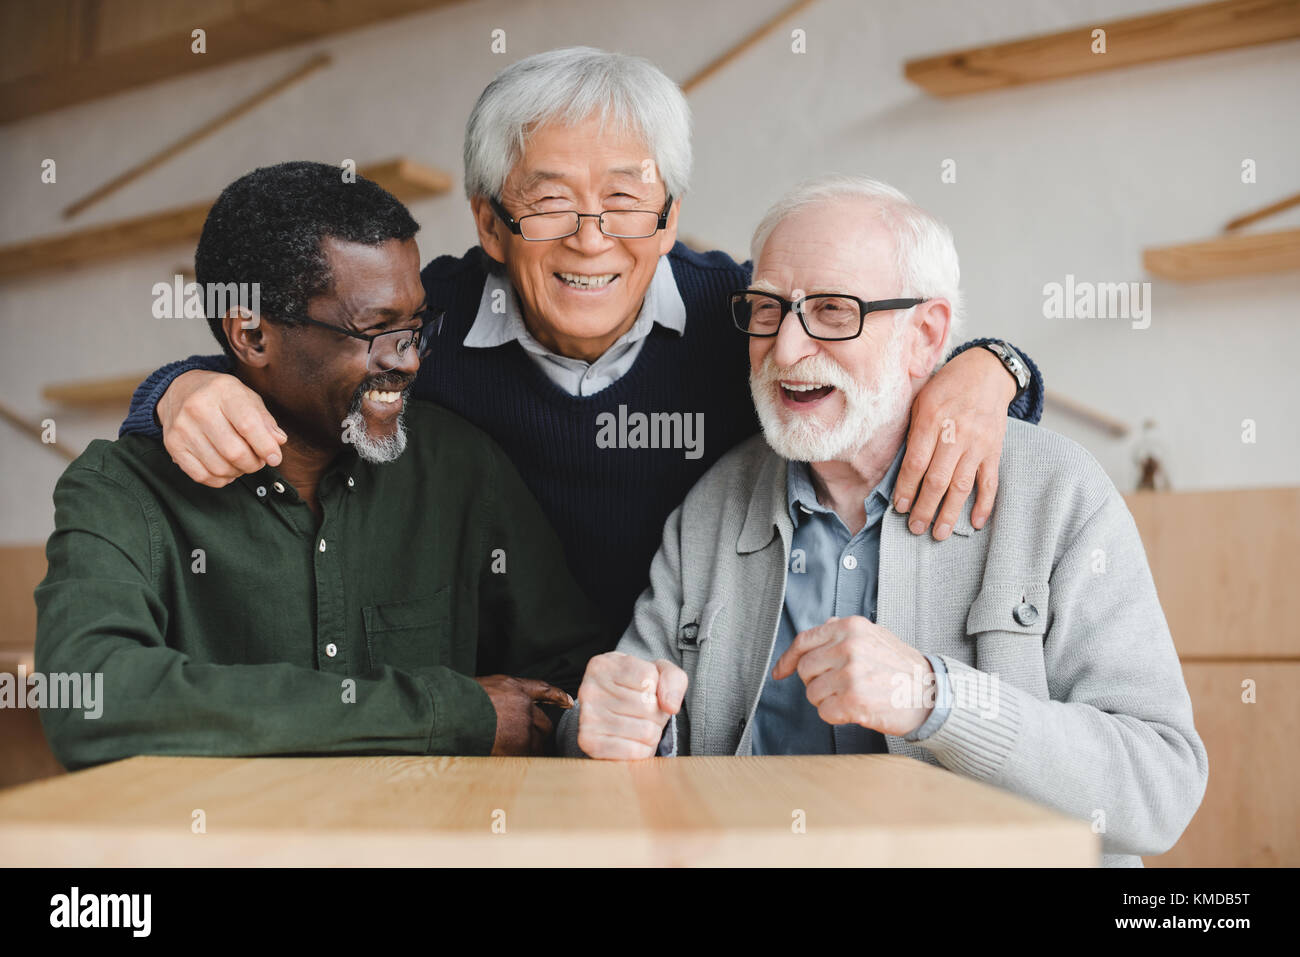 senior friends embracing in bar - Stock Image